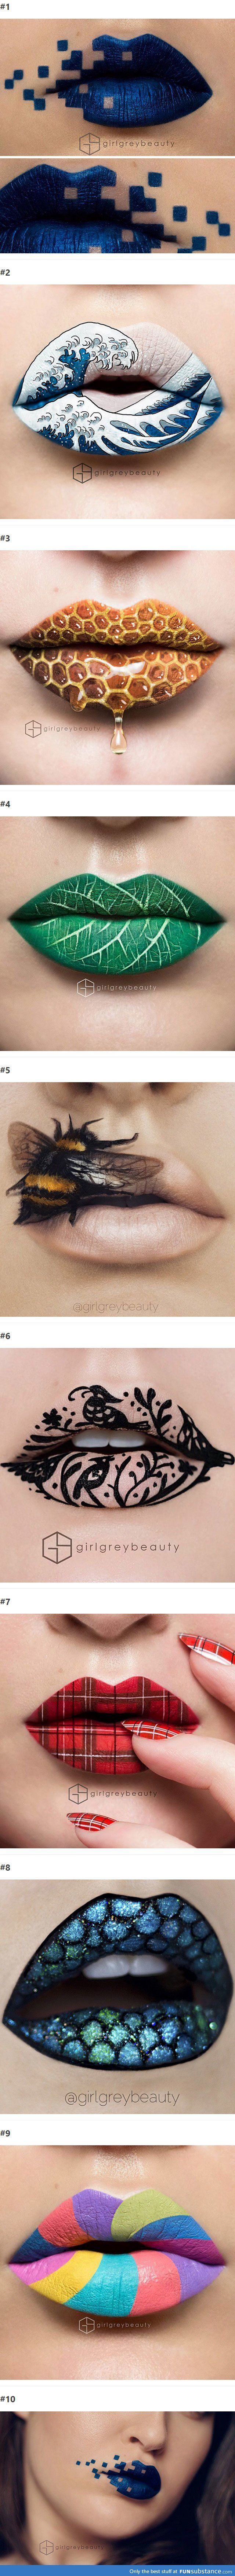 Makeup Artist Uses Her Lips To Create Stunning Art Pieces – FunSubstance